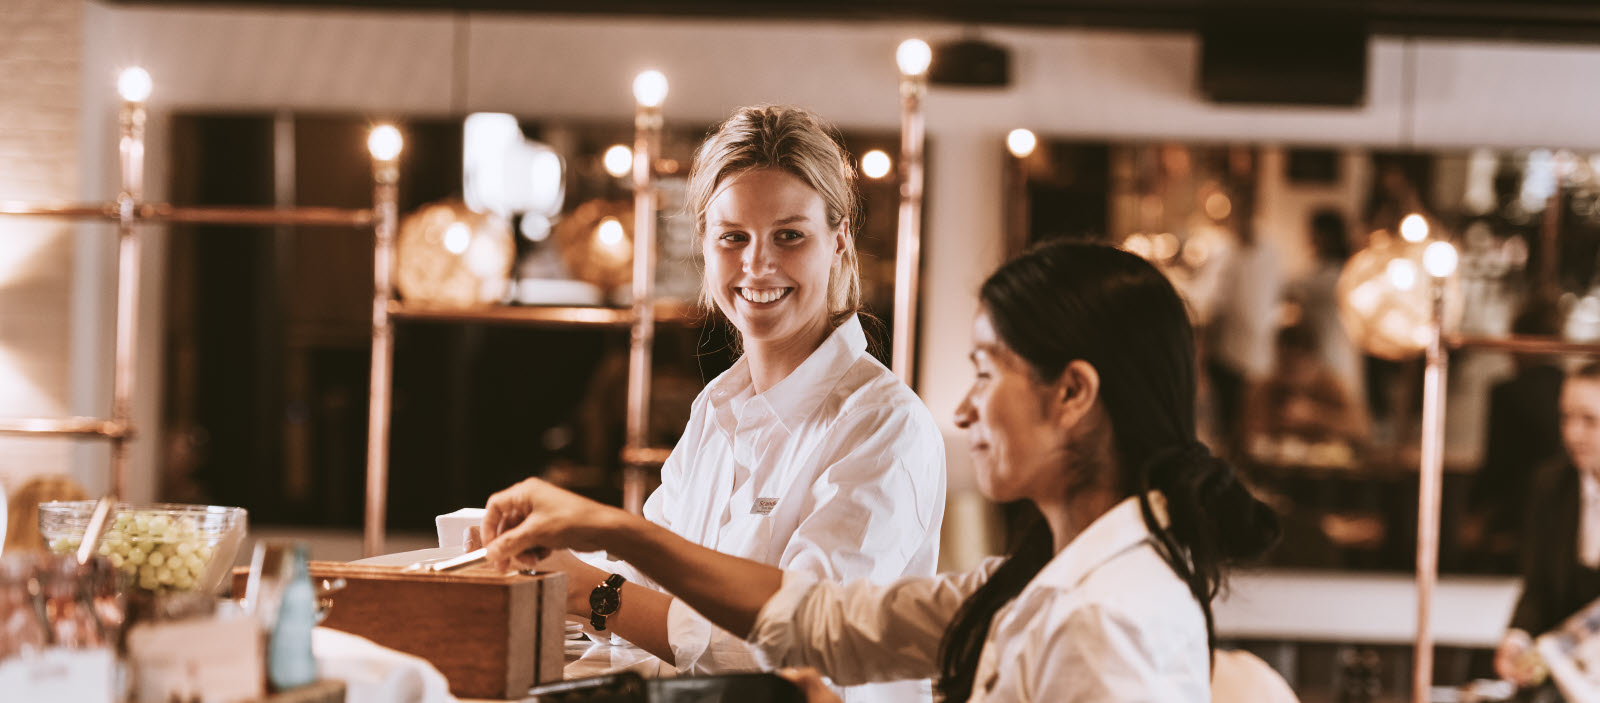 waitress-serving-food-GC_0171.jpg